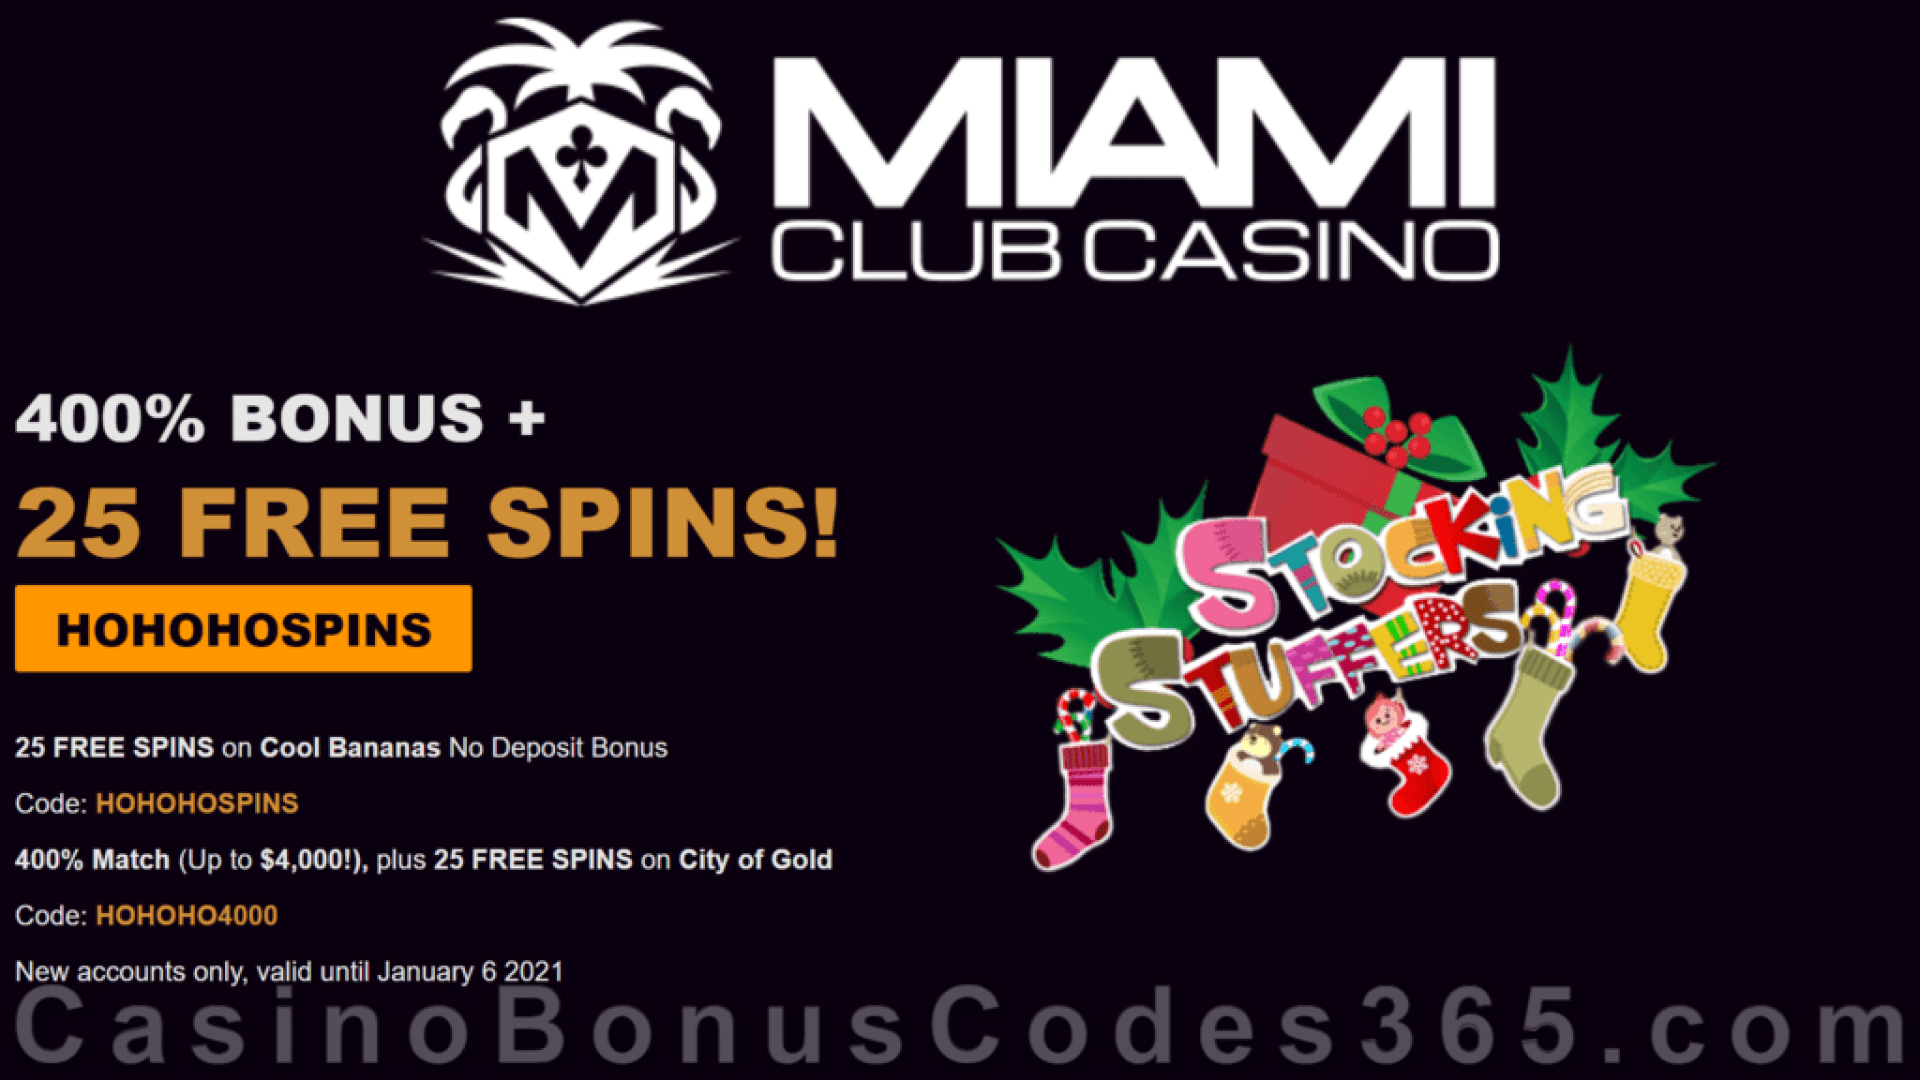 Miami Club Casino 25 FREE WGS Cool Bananas Spins and 400% Match Bonus plus 25 FREE Spins on WGS City of Gold Special Holiday Super Promo